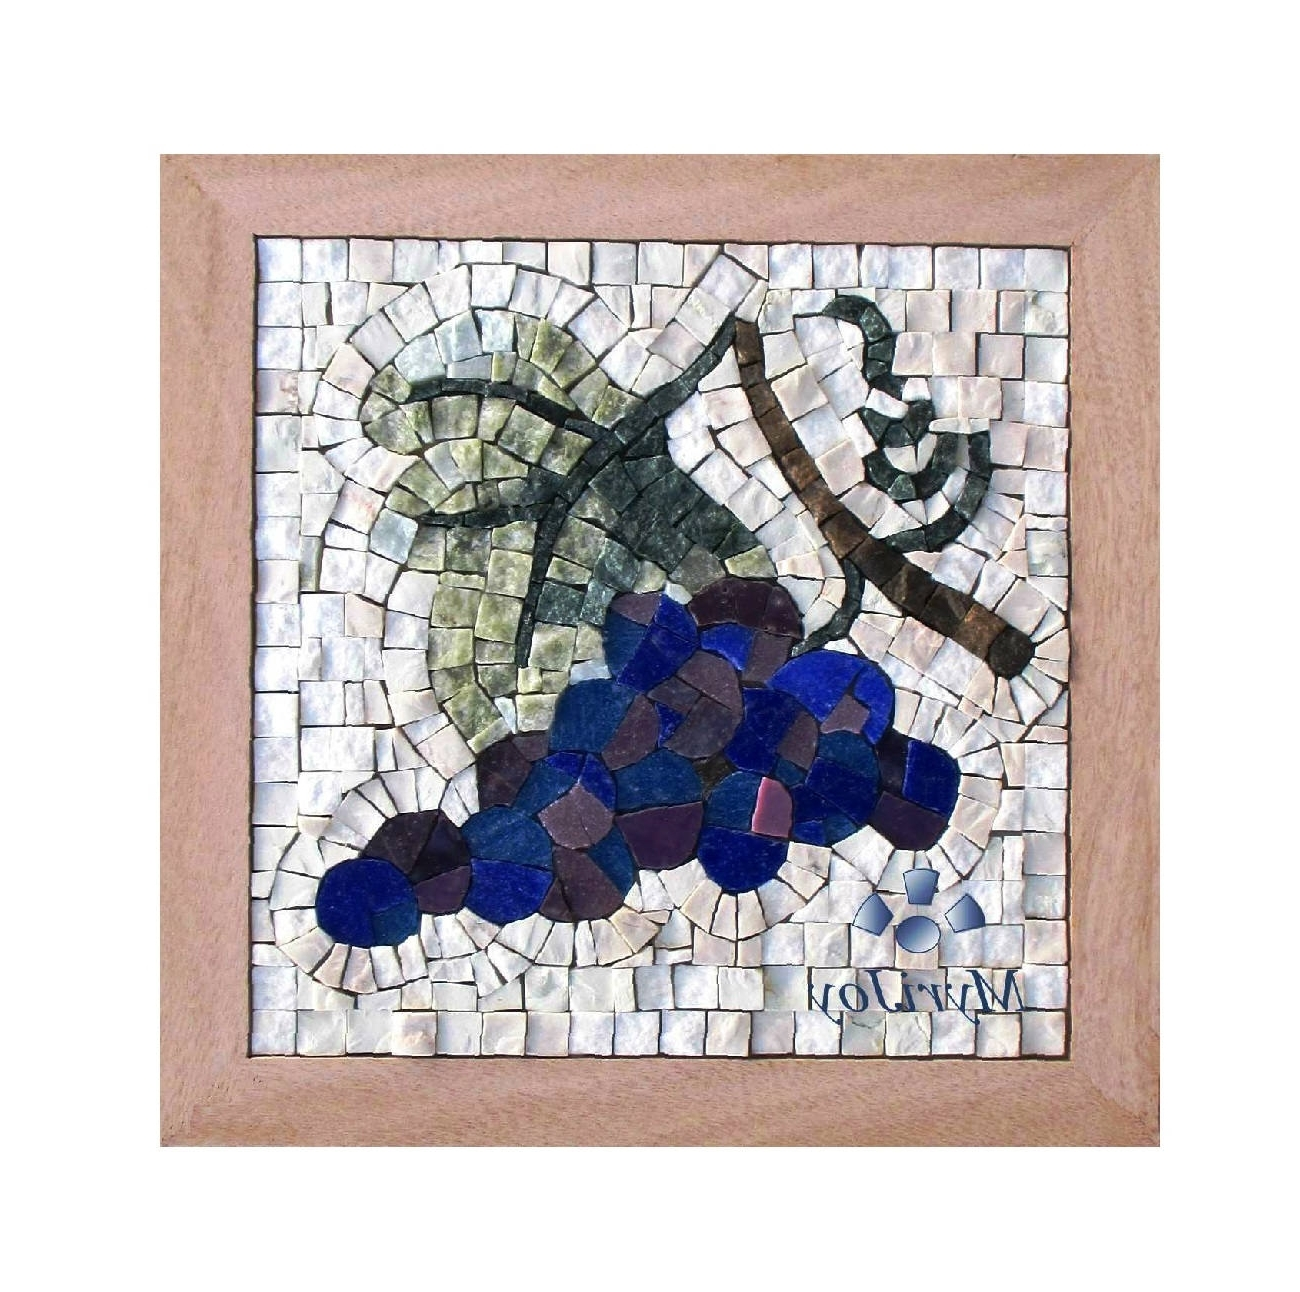 "Well Liked Diy Mosaic Wall Art Intended For Mosaic Wall Art Kit Fall 9""x9"" Diy Mosaics Tiles Craft Adults – Do (View 15 of 15)"